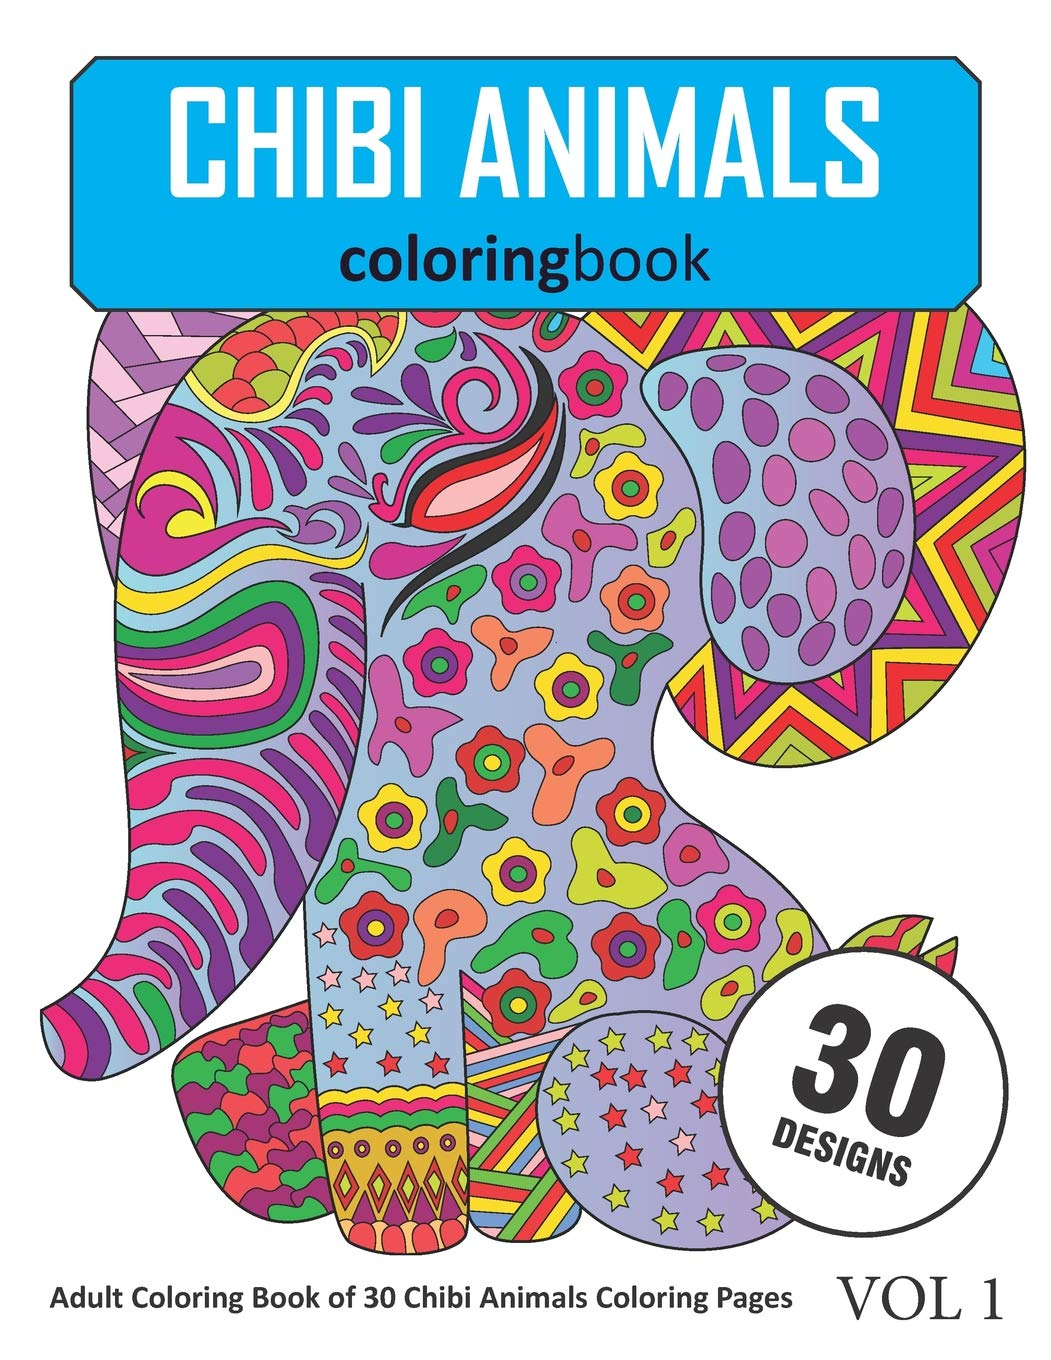 95 Chibi Animals Coloring Book Free